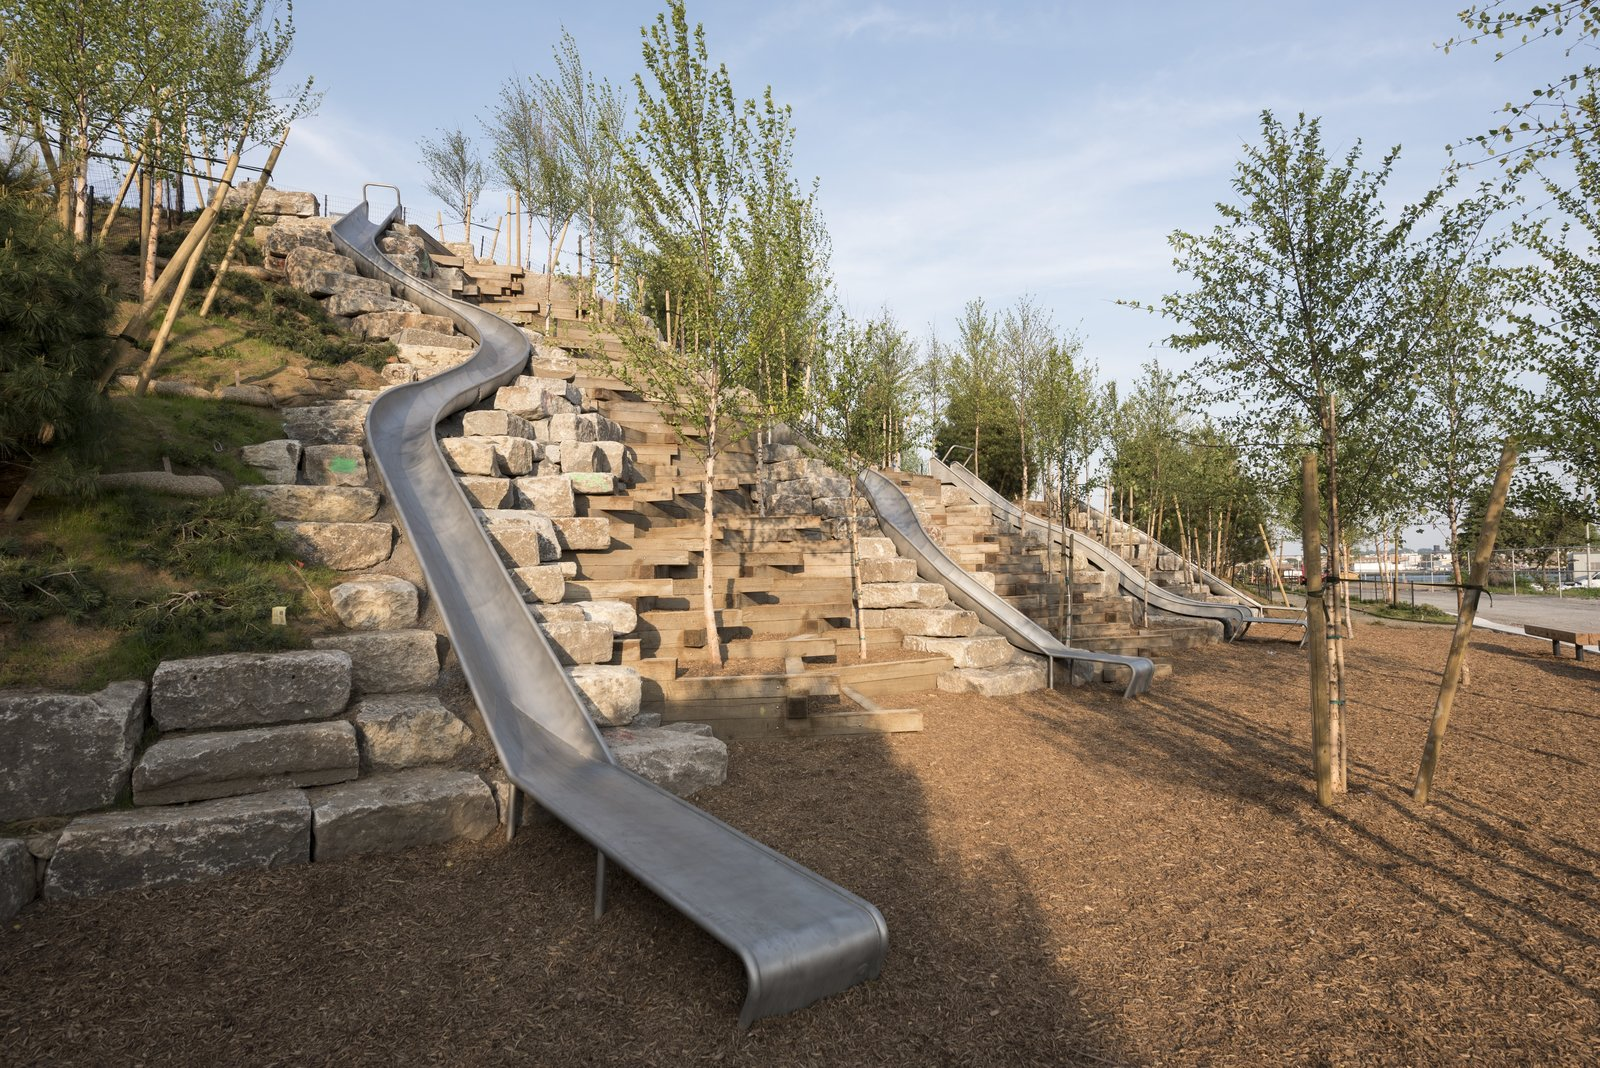 Slide Hill offers an interactive platform for play that includes a universally accessible path and the longest sliding board in the city.